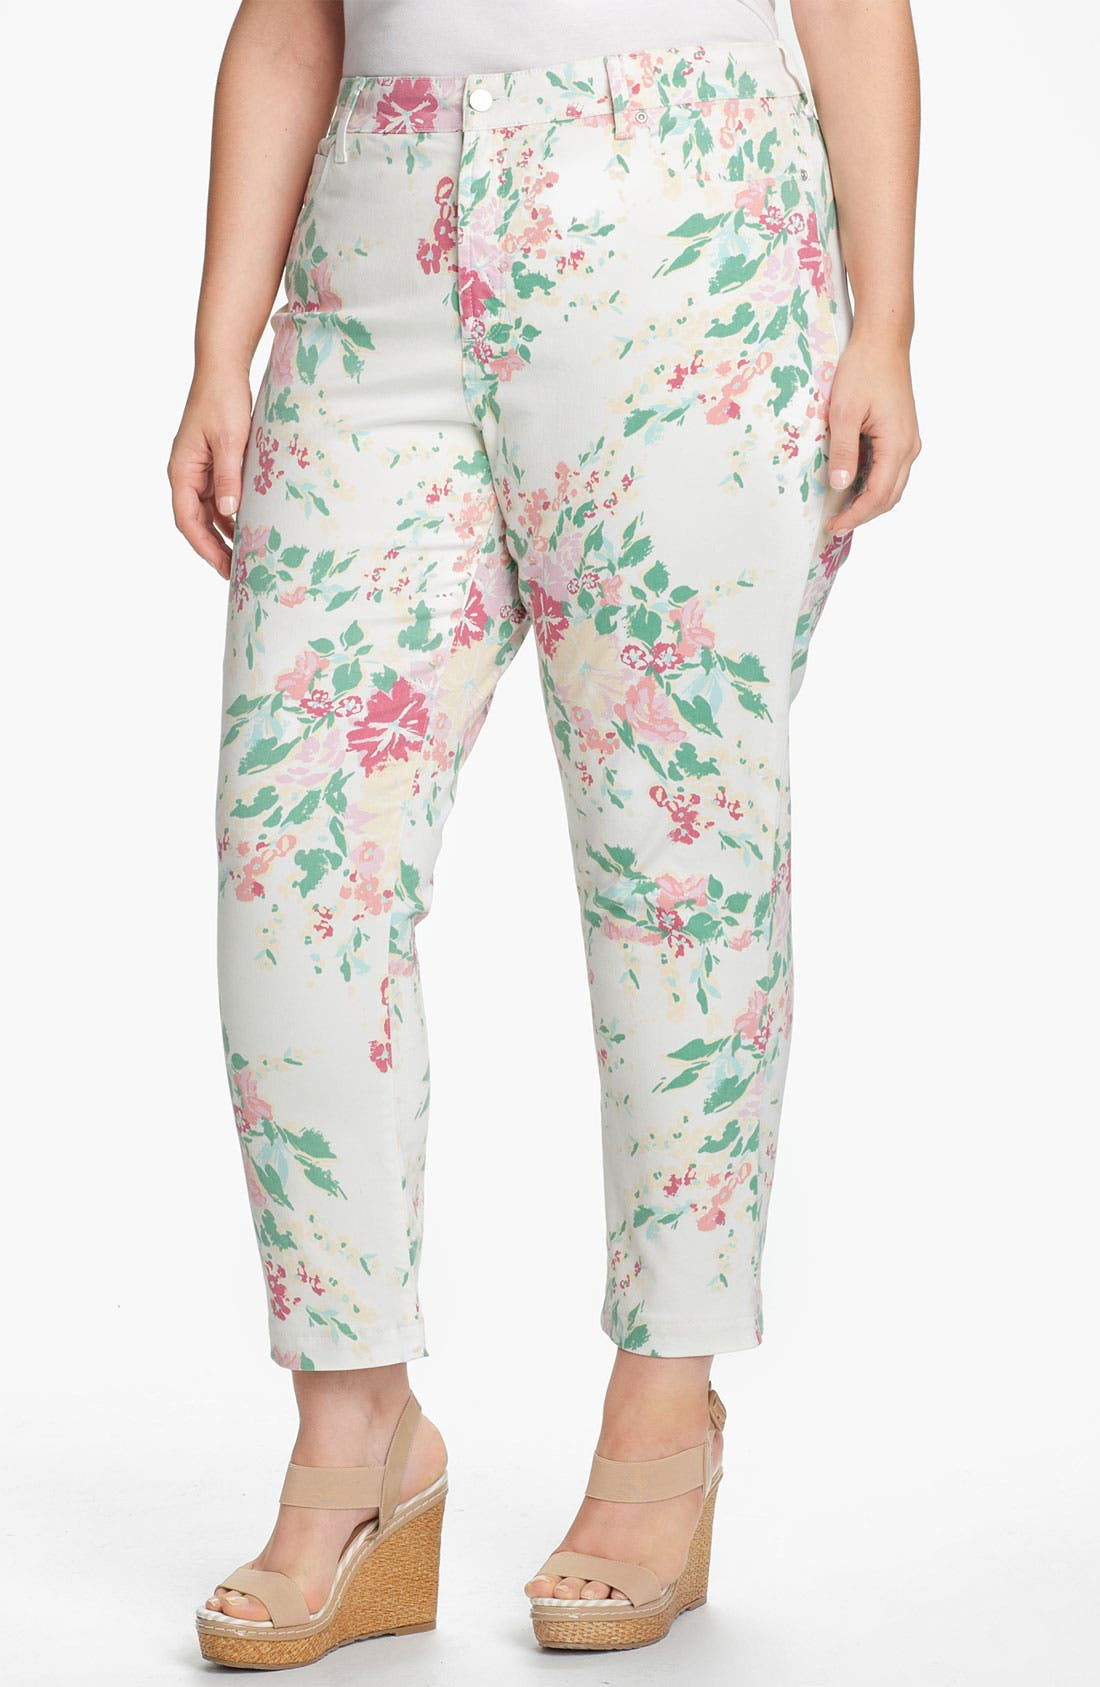 Alternate Image 1 Selected - NYDJ 'Audrey' Floral Print Ankle Jeans (Plus)